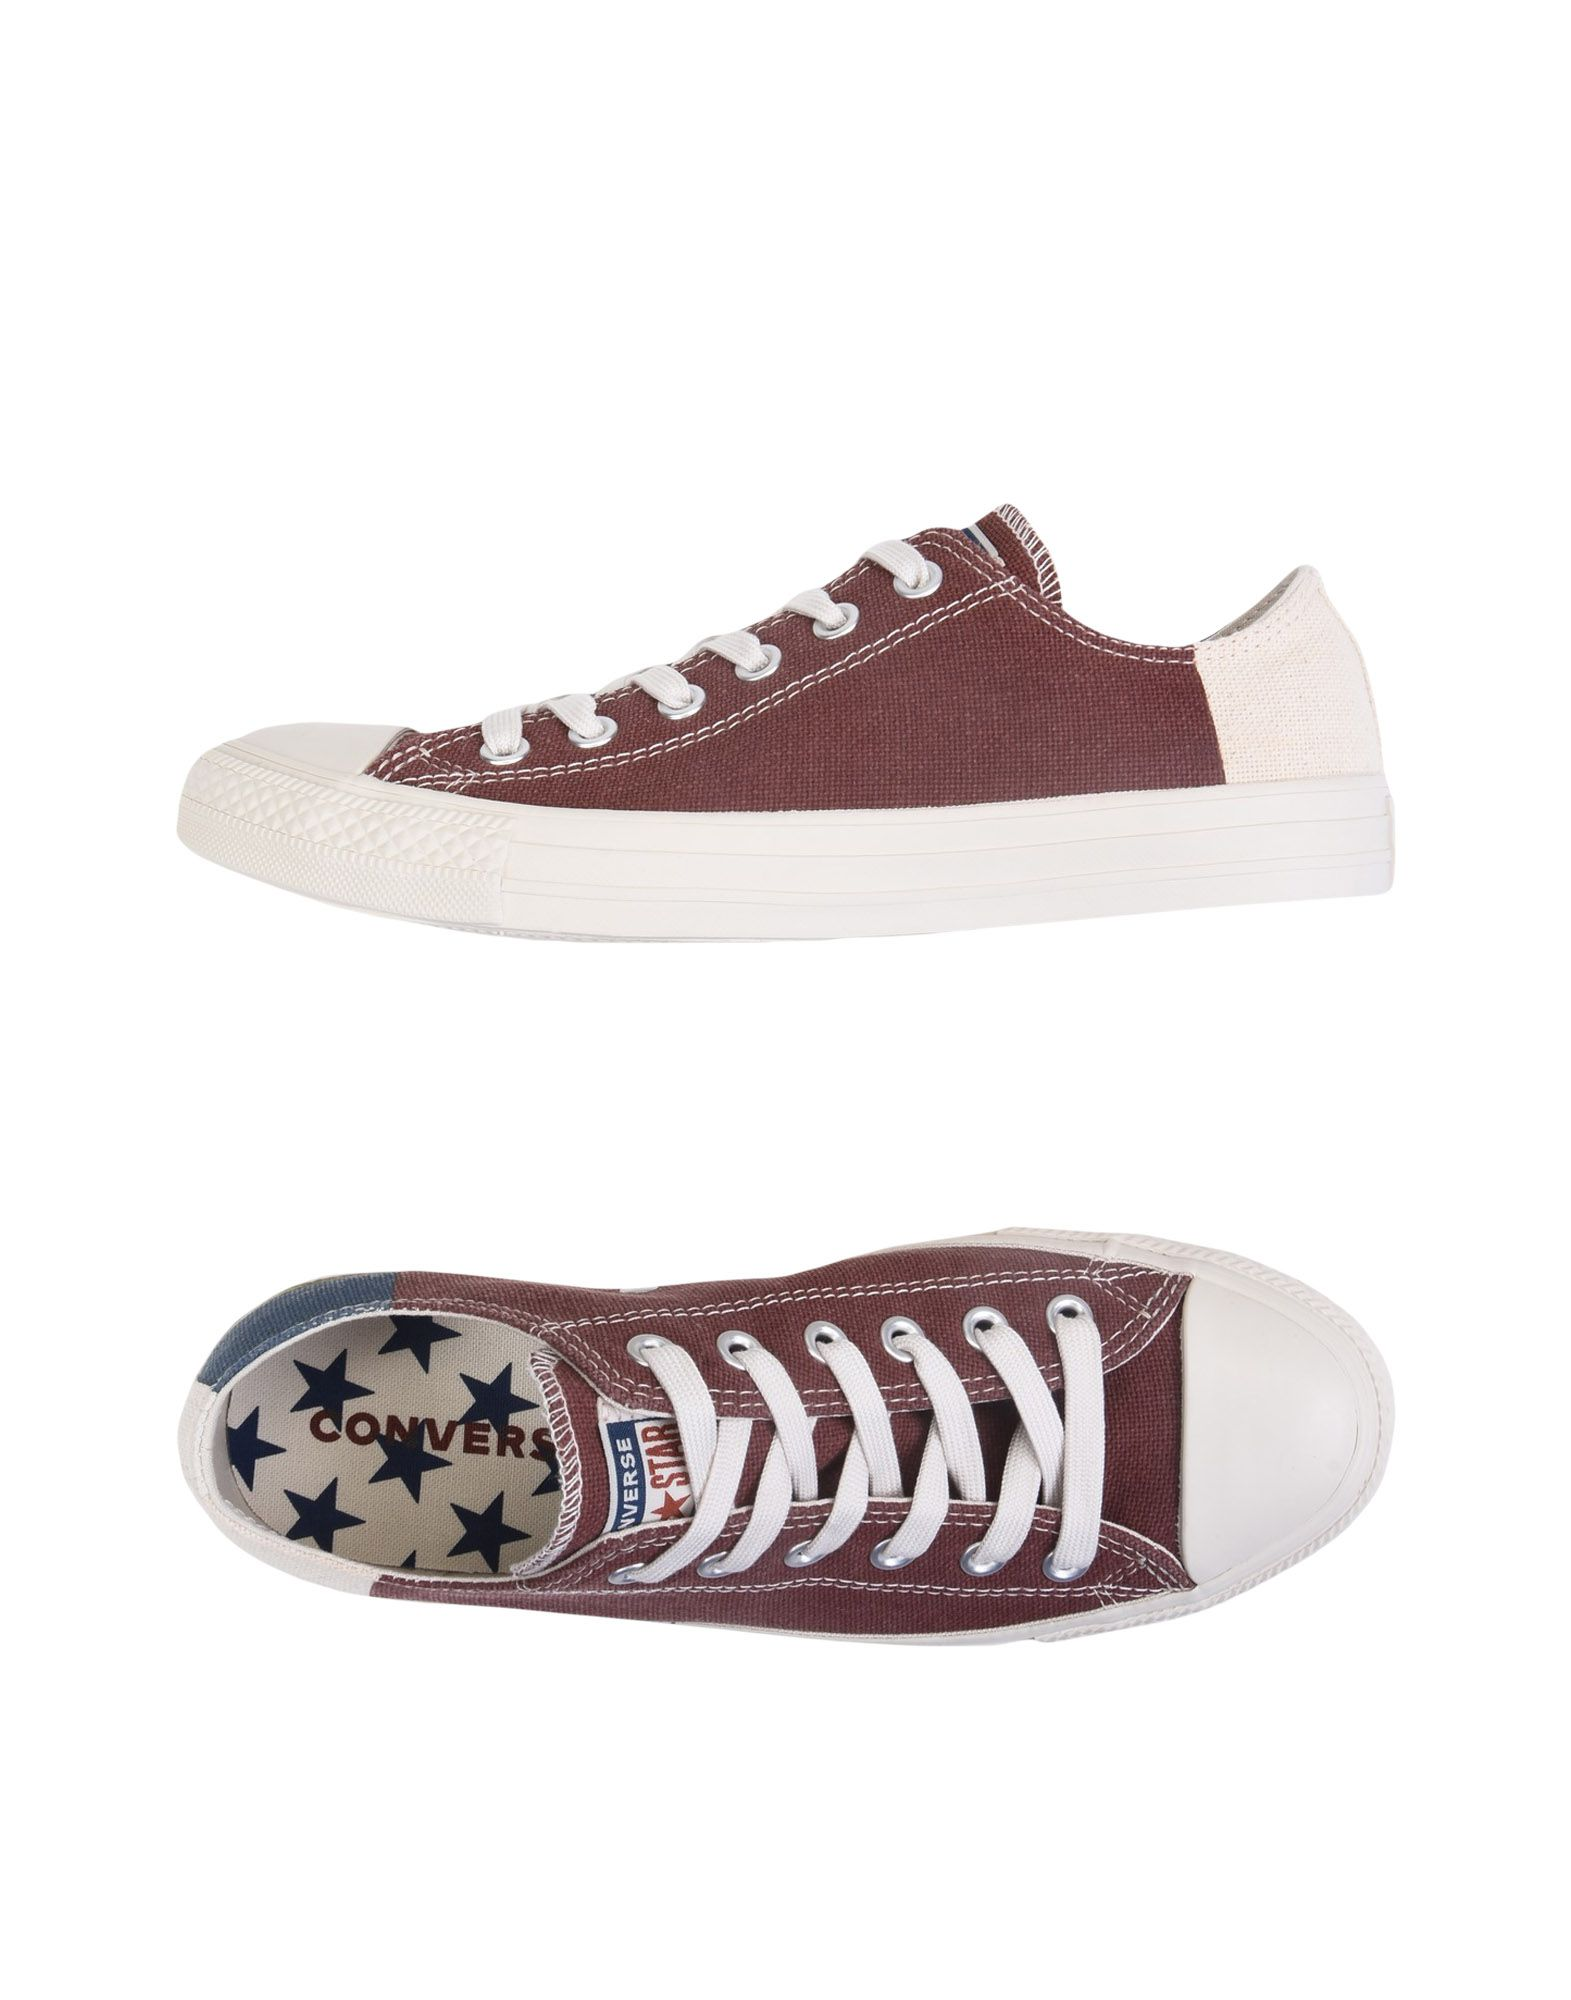 Converse All Star Ox Chuck Taylor All Star Ox Star Americana Block - Sneakers - Men Converse All Star Sneakers online on  United Kingdom - 11511240VN 94b608